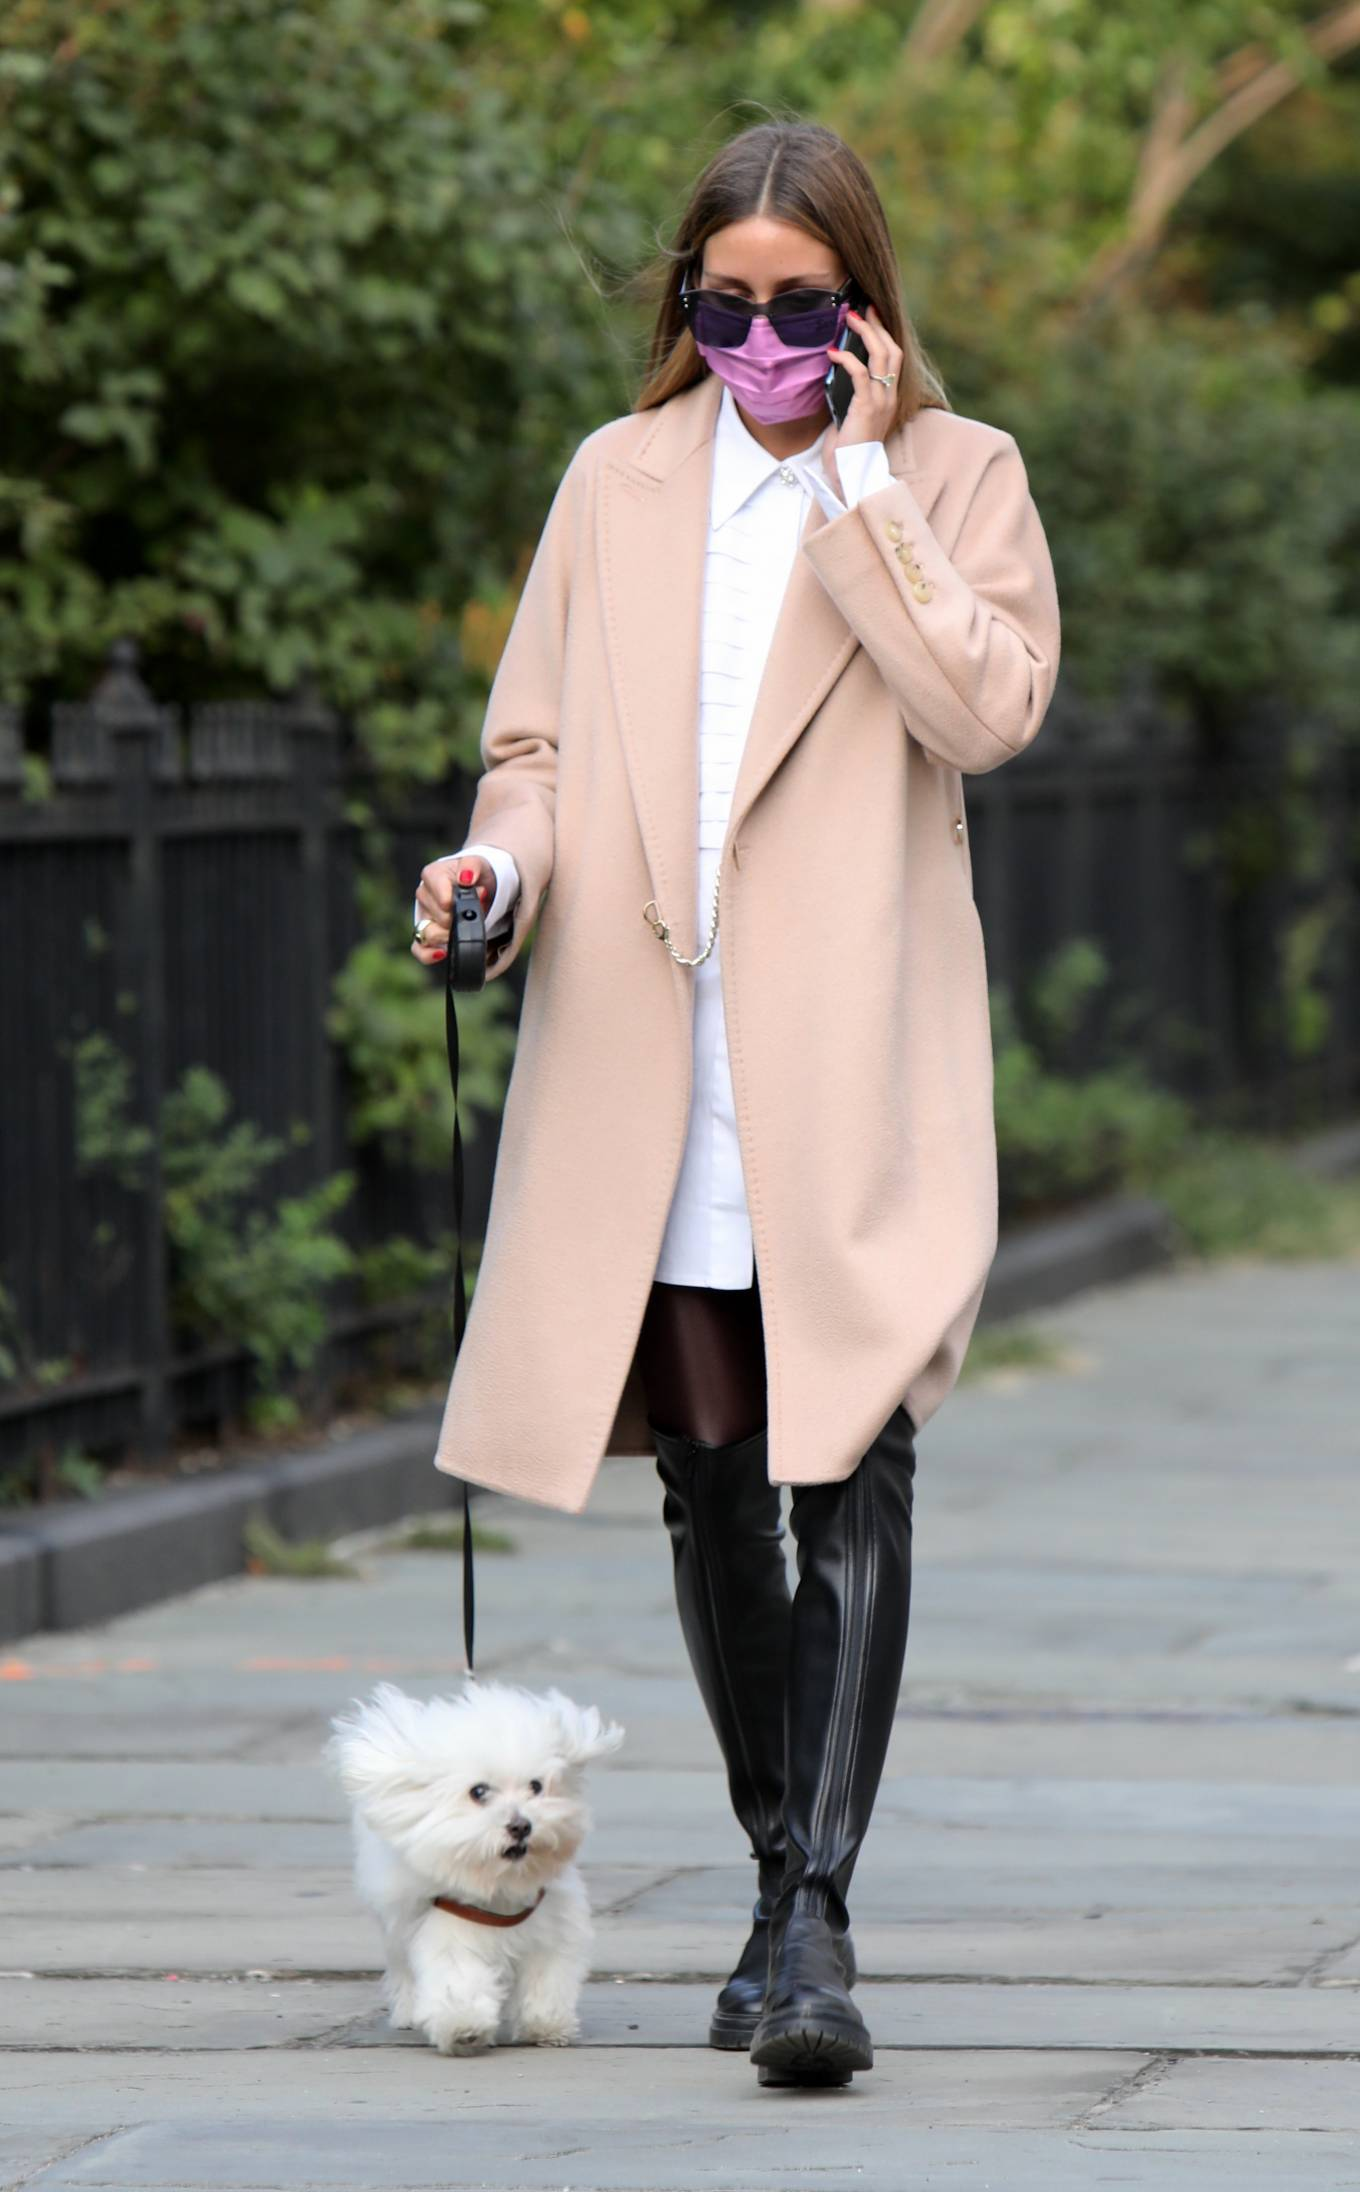 Olivia Palermo 2020 : Olivia Palermo – Wearing a white short dress under a coat while out for a walk in Manhattan-17